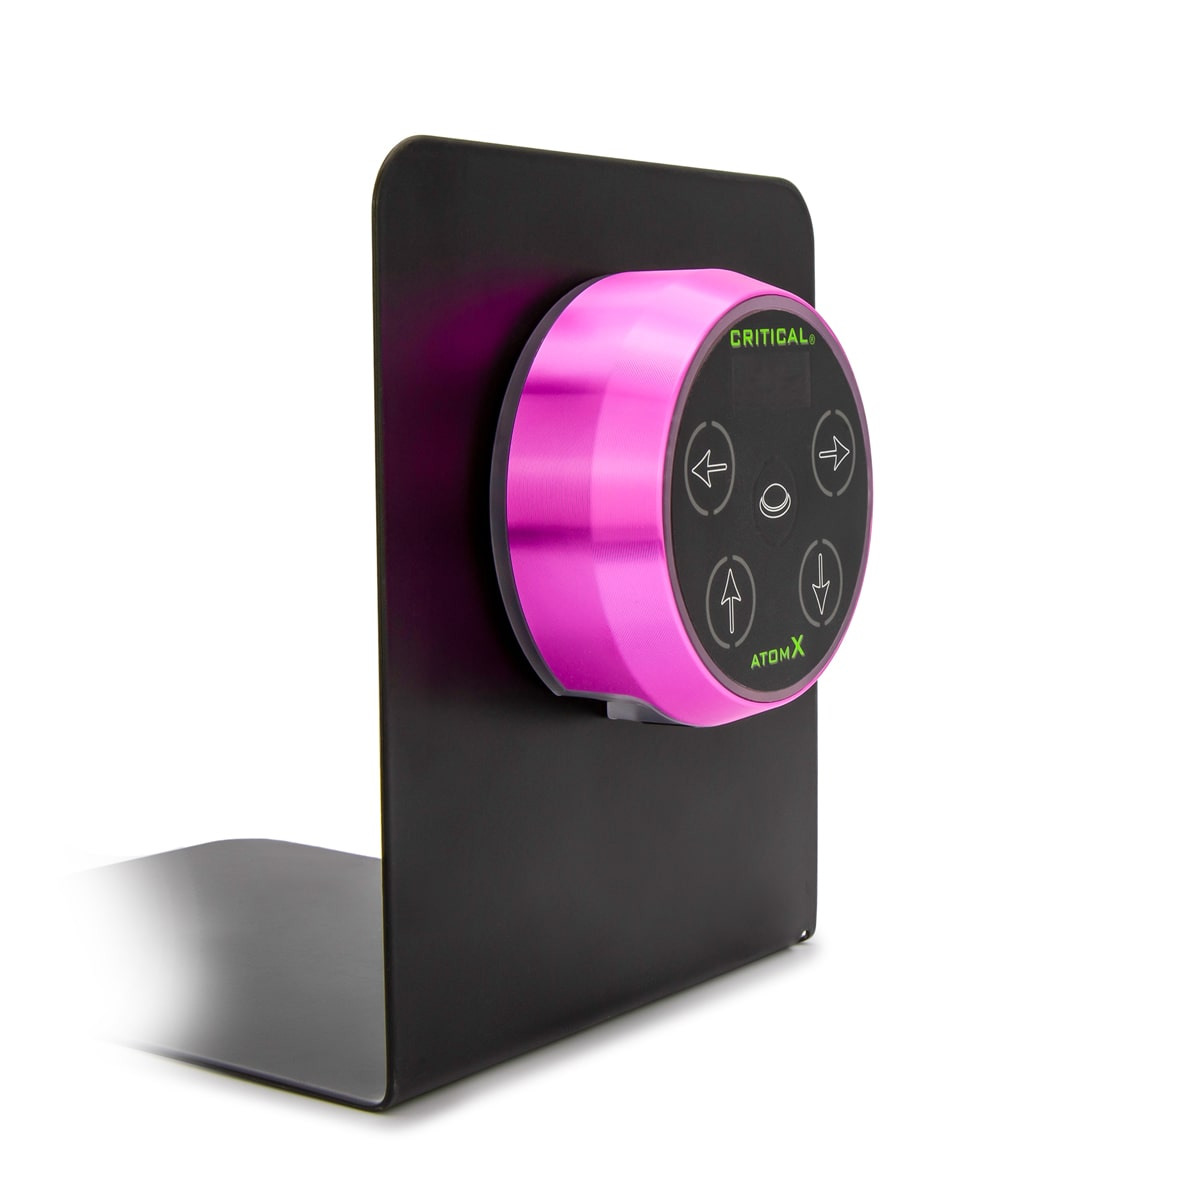 Critical Atom X Power Supply - Pink